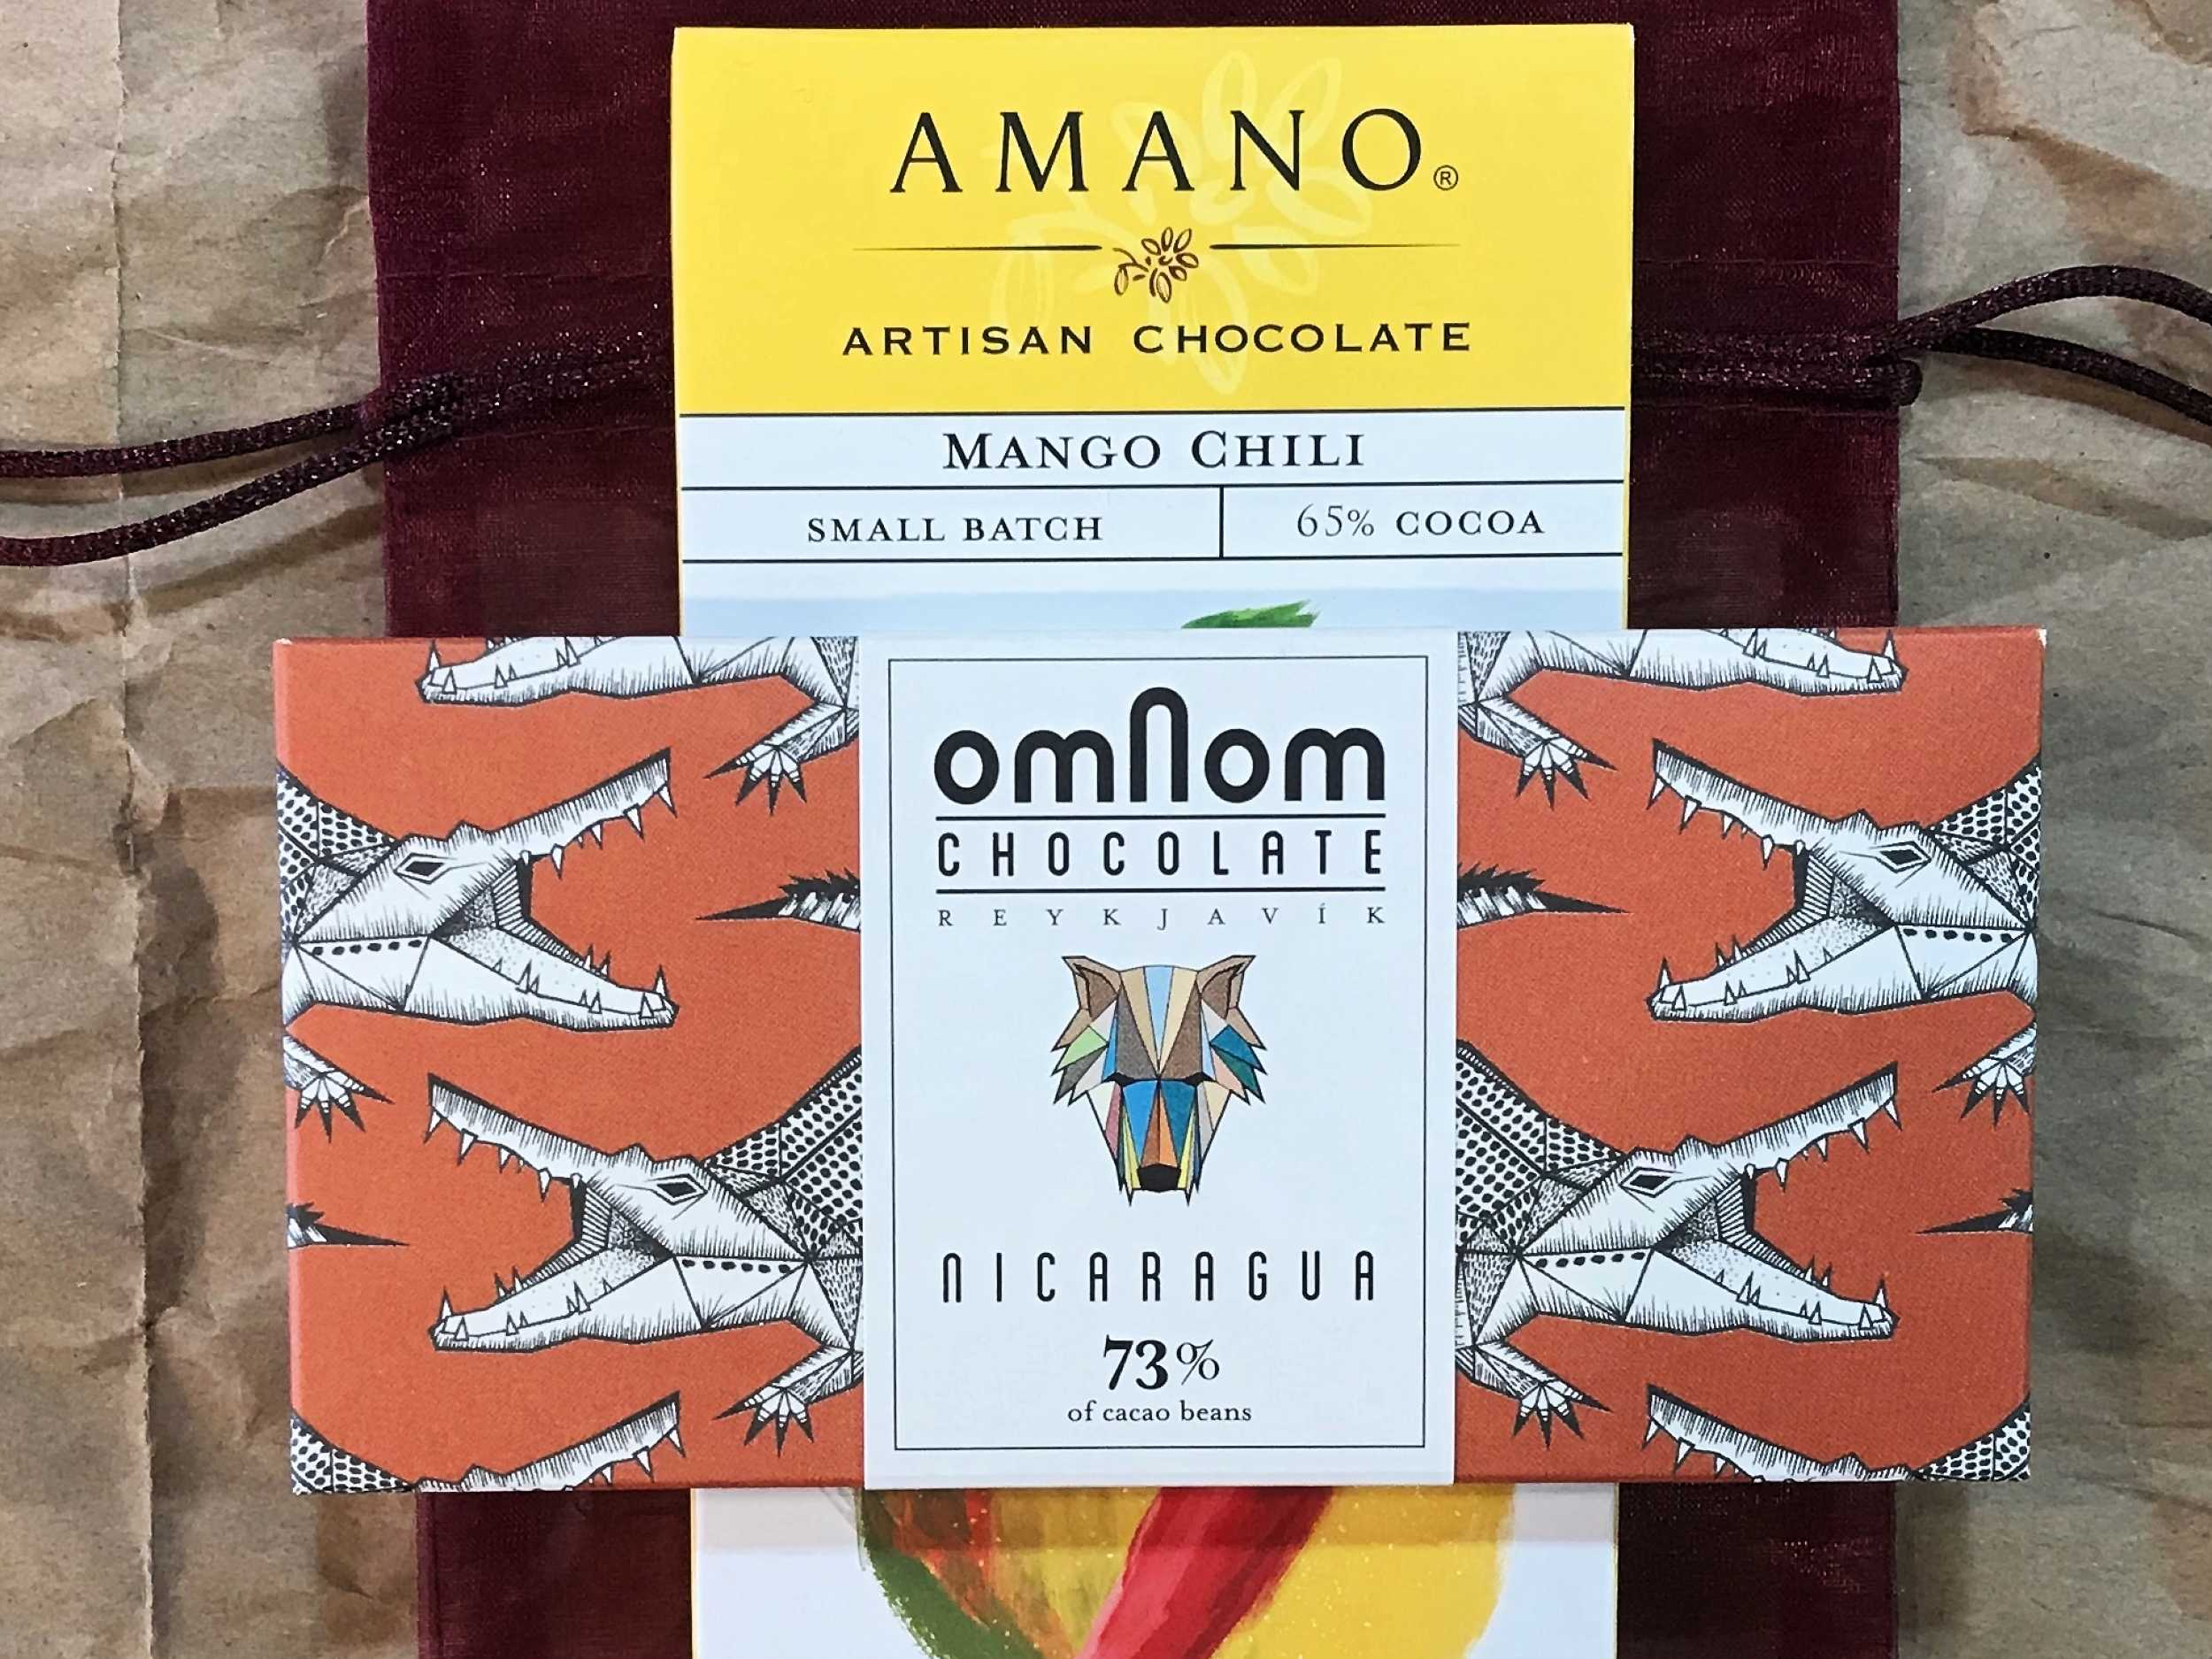 Amano Mango Chili Artisan Chocolate and Omnon Chocolate from Nicaragua